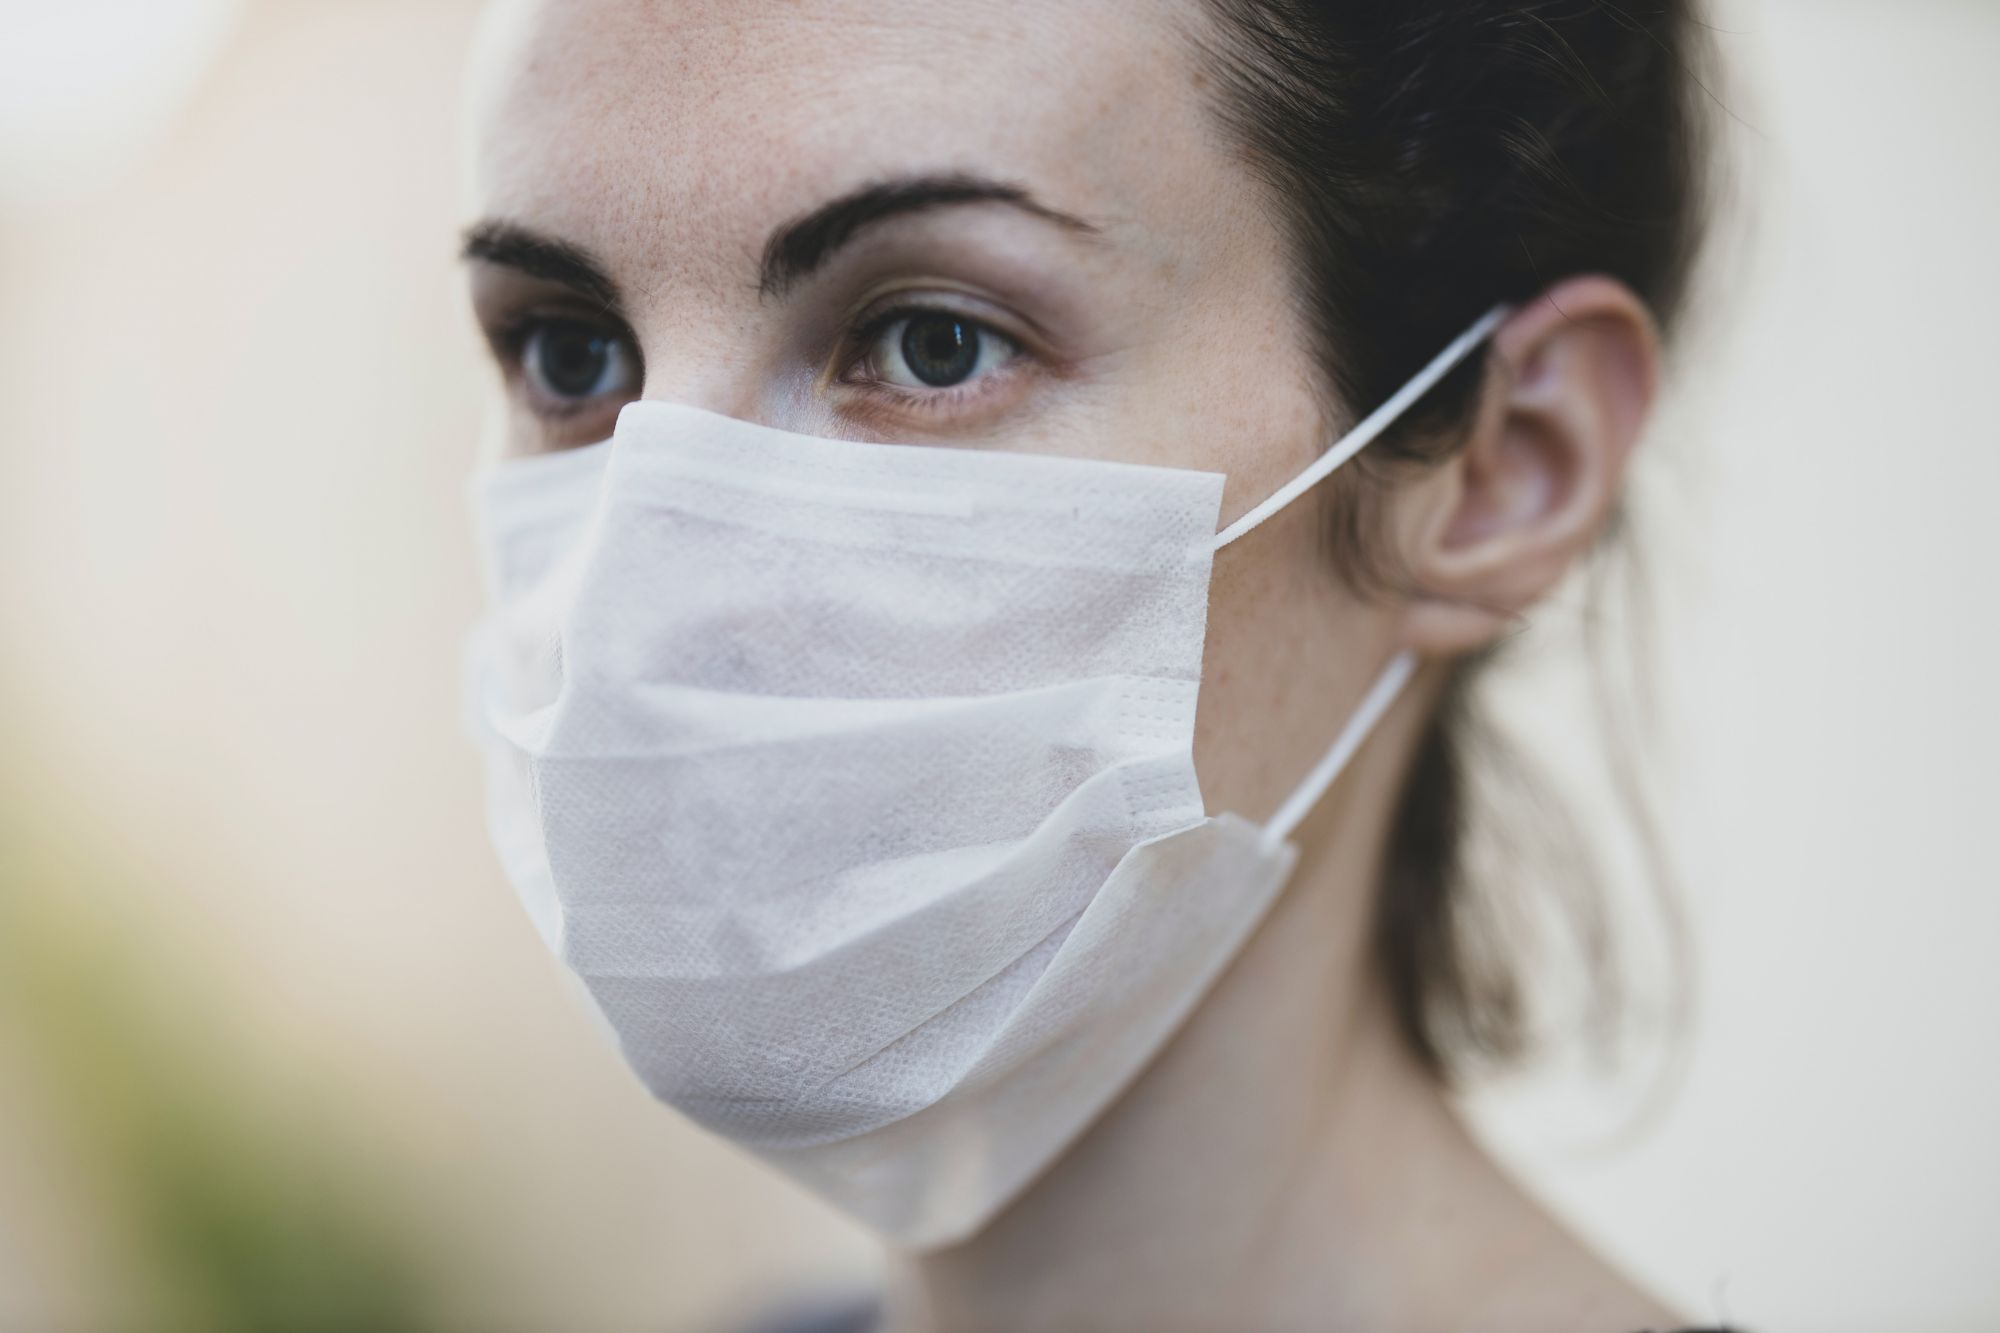 Coronavirus Tips: How To Wear Your Face Mask Properly And When To Replace It